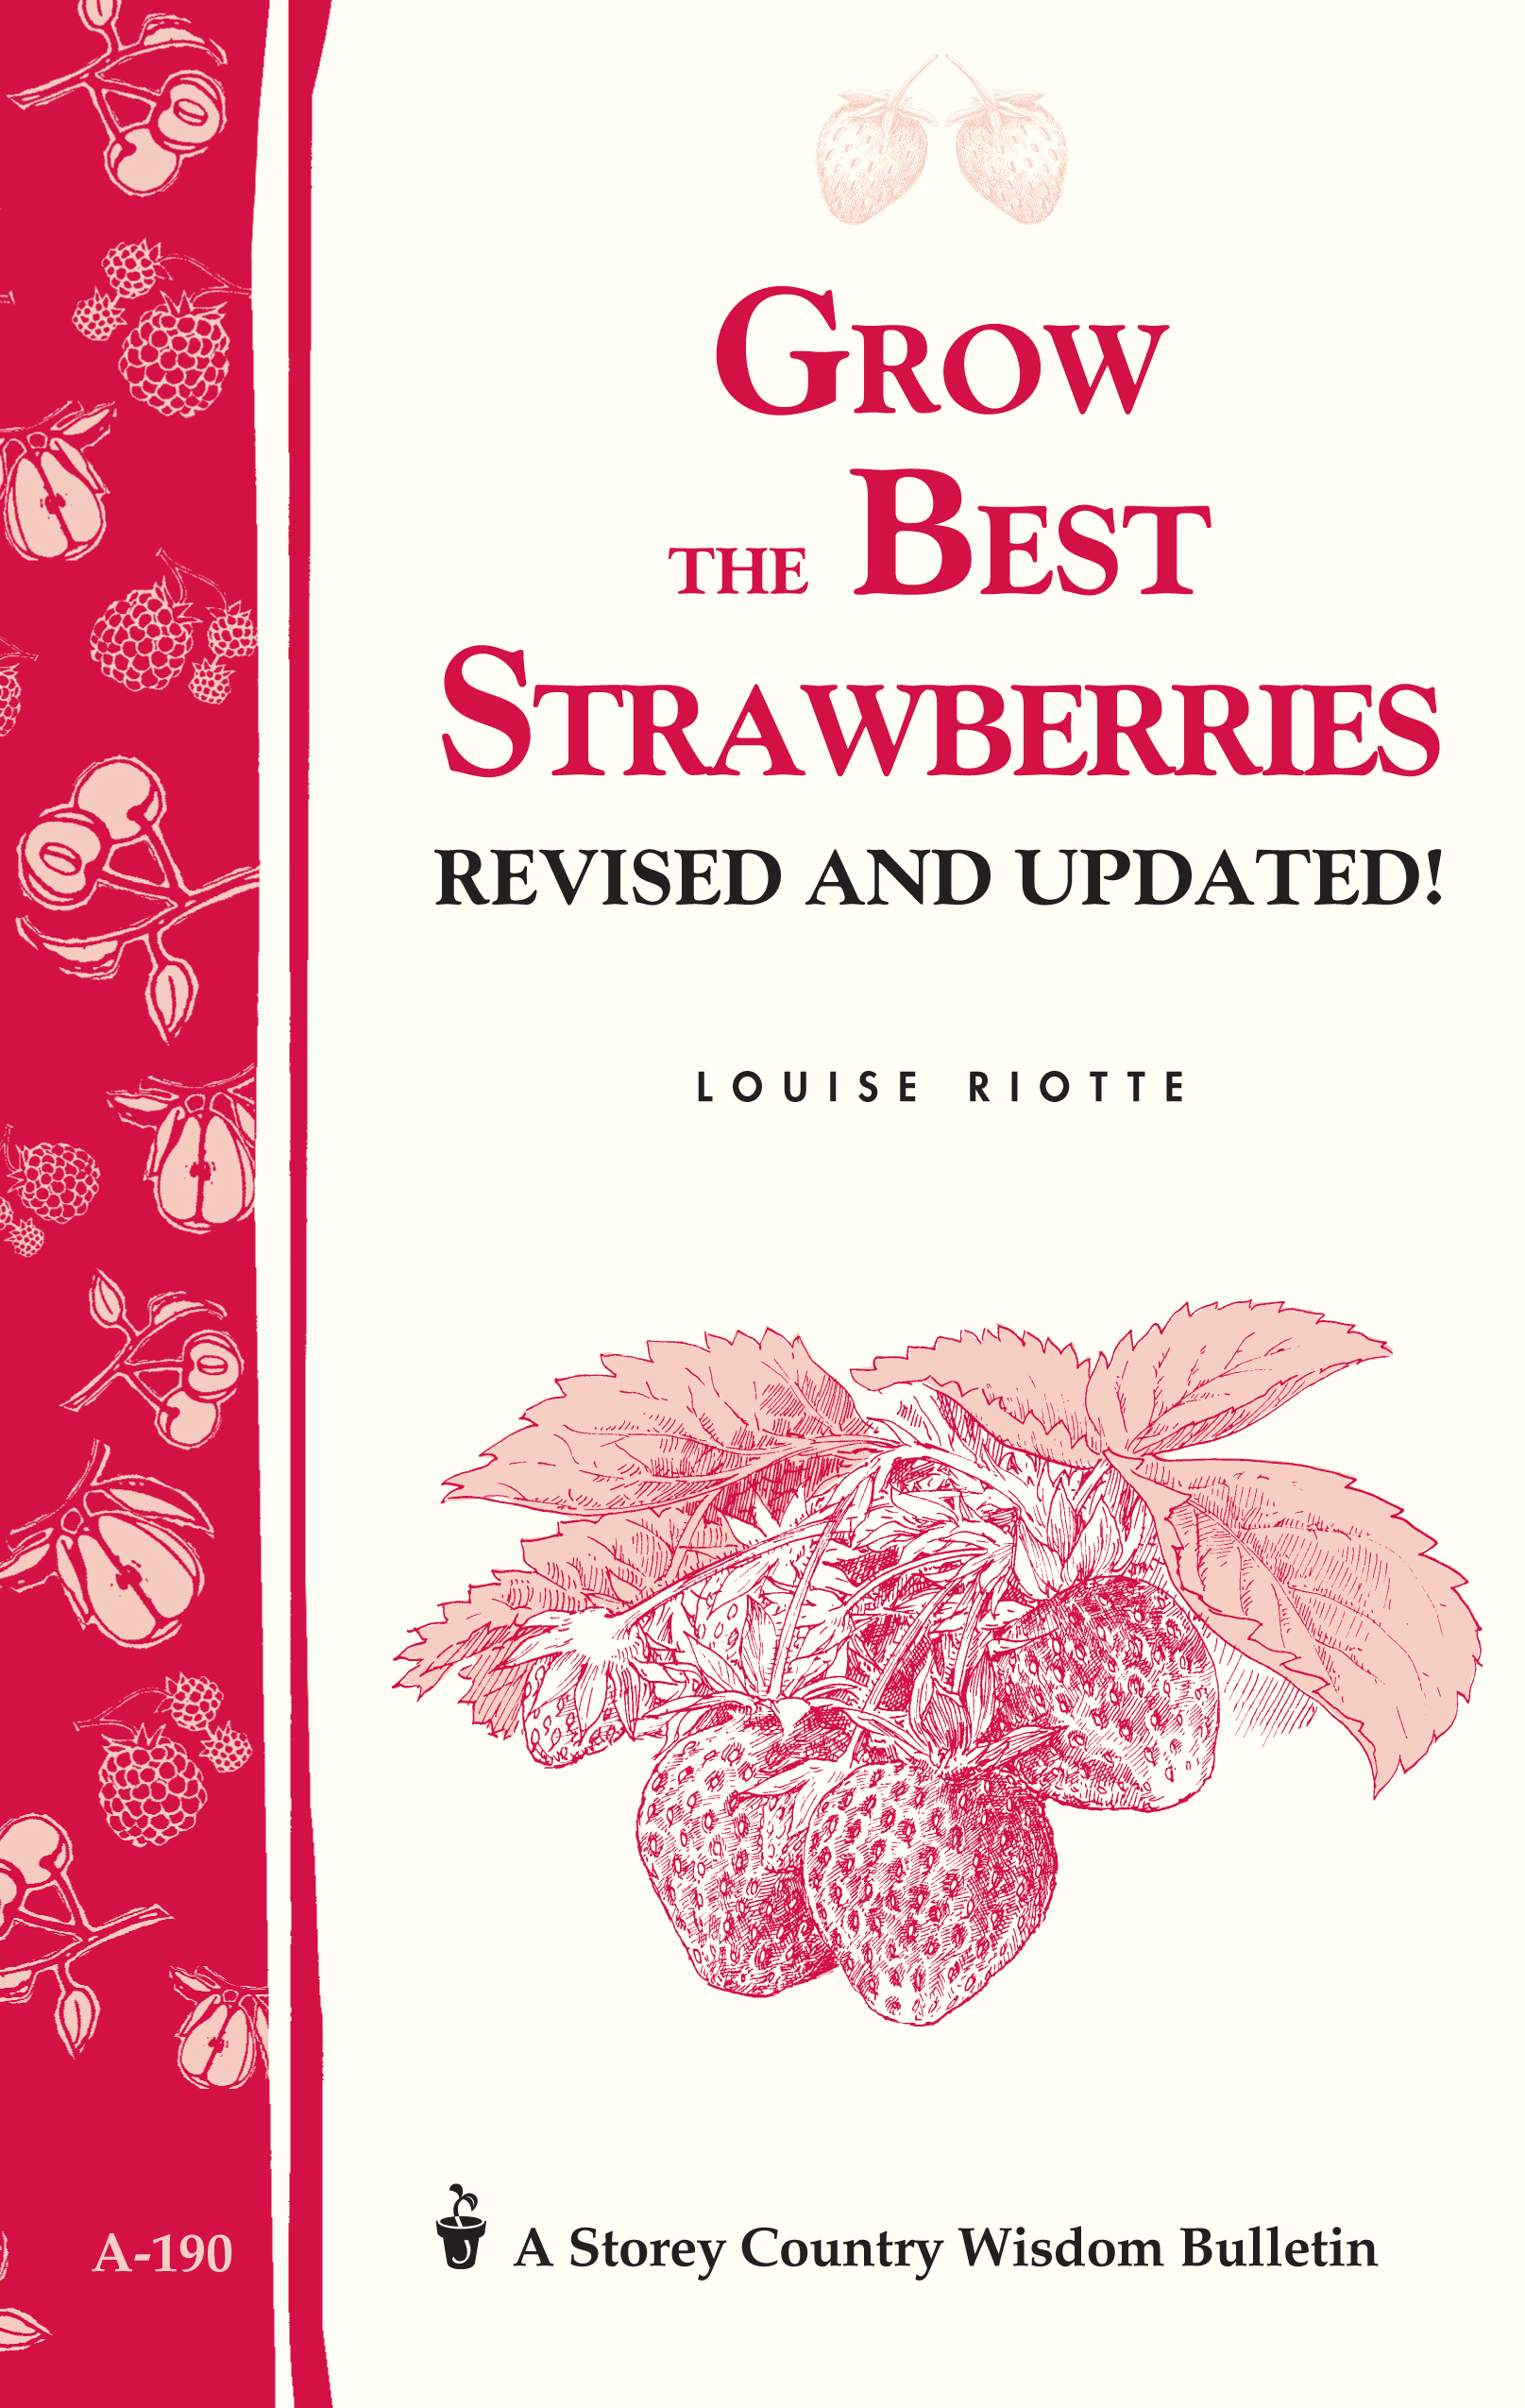 Grow the Best Strawberries Storey's Country Wisdom Bulletin A-190 - Louise Riotte